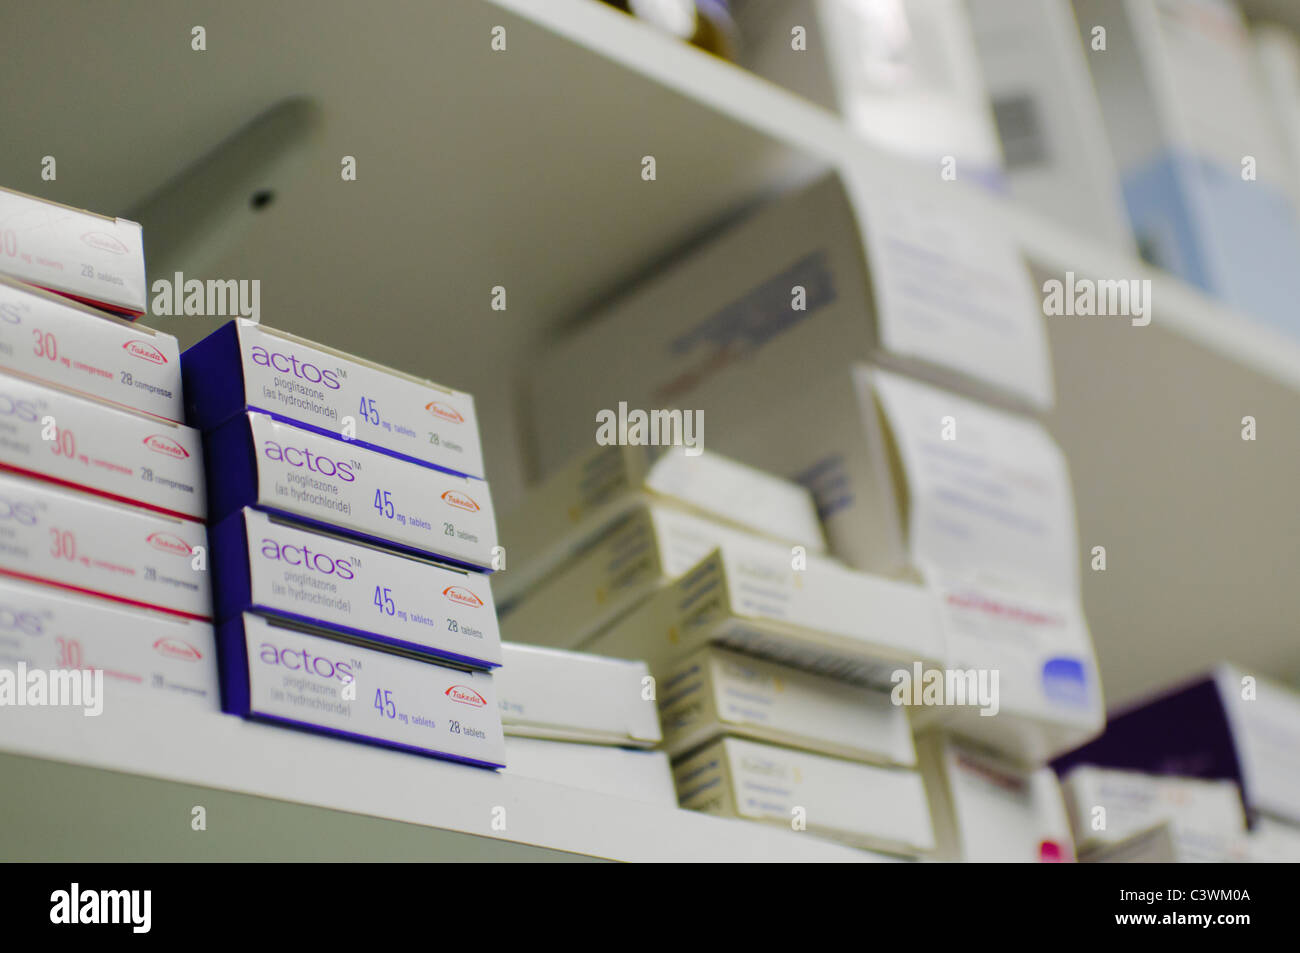 Boxes of prescription tablets on a pharmacy shelf - Stock Image